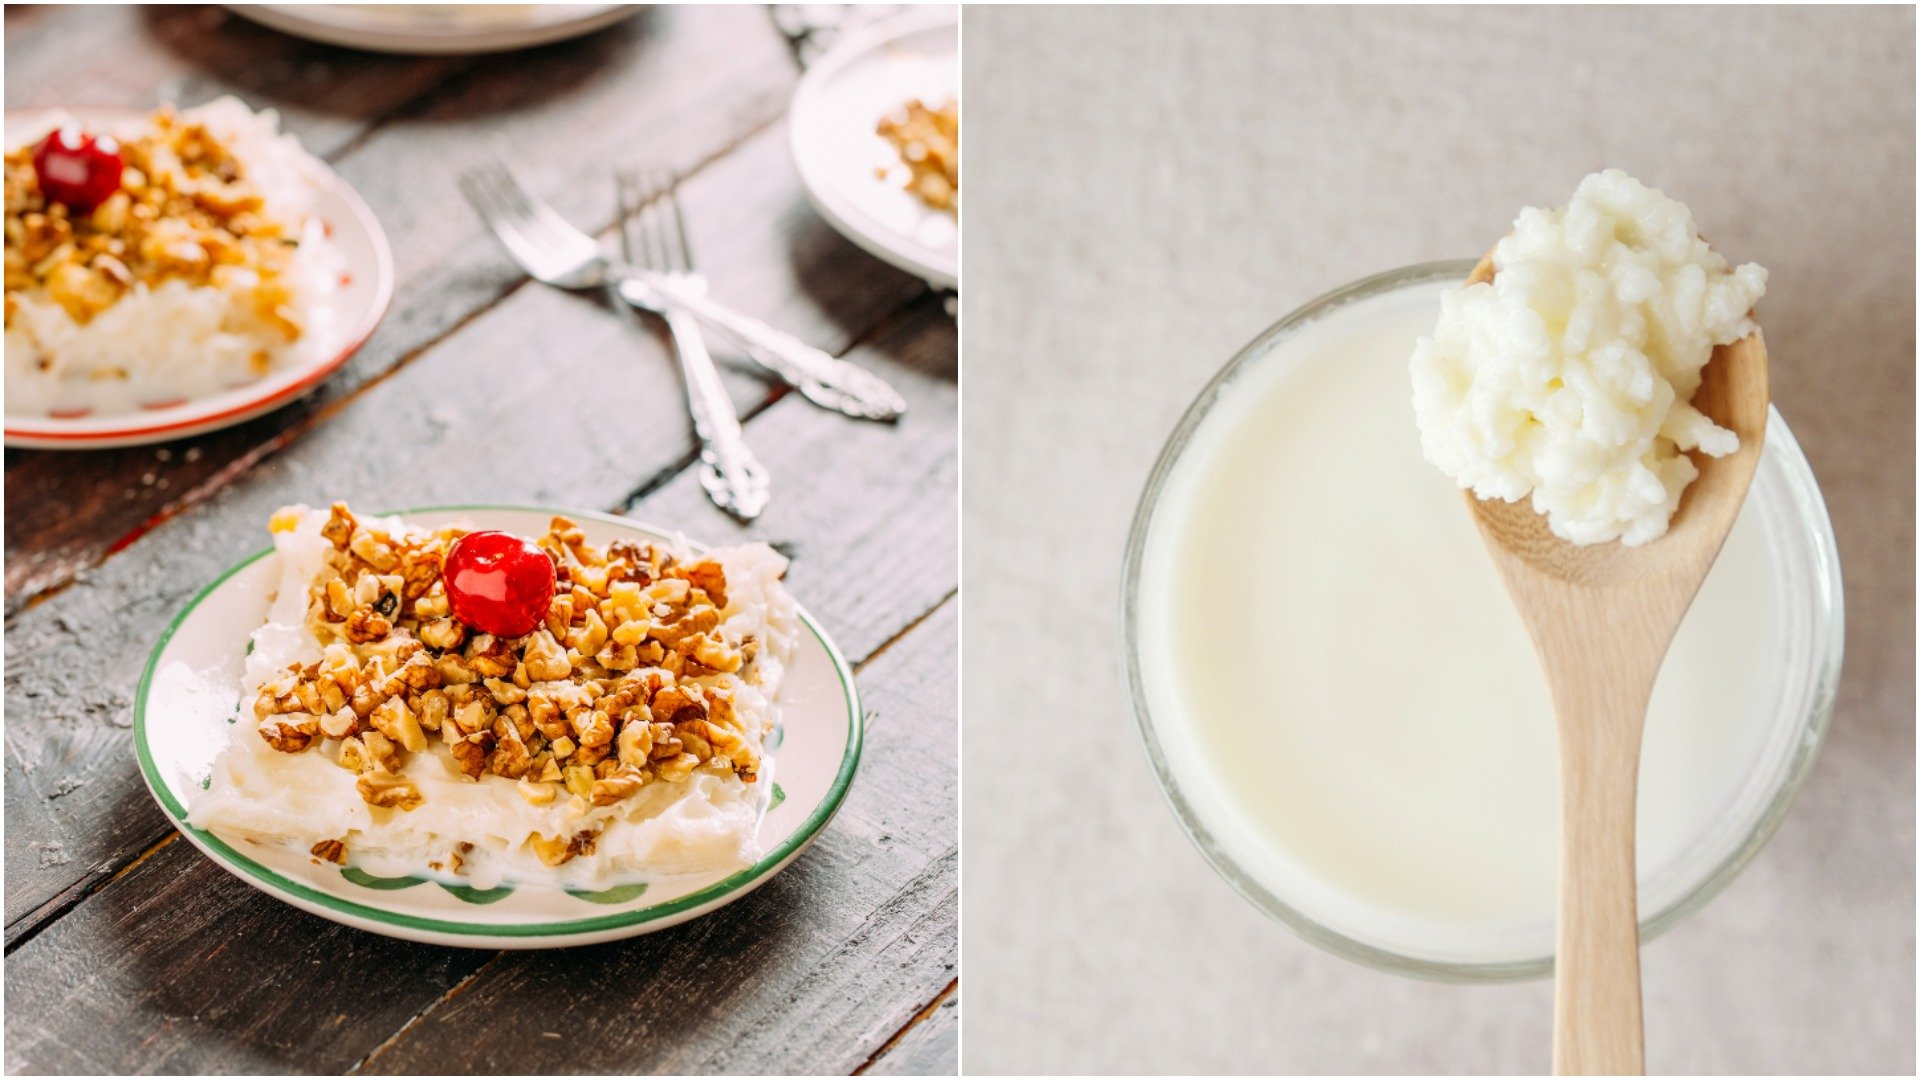 Instead of heavy desserts, feast on some traditional güllaç or a glass of kefir and berries for dessert. (iStock Photos)